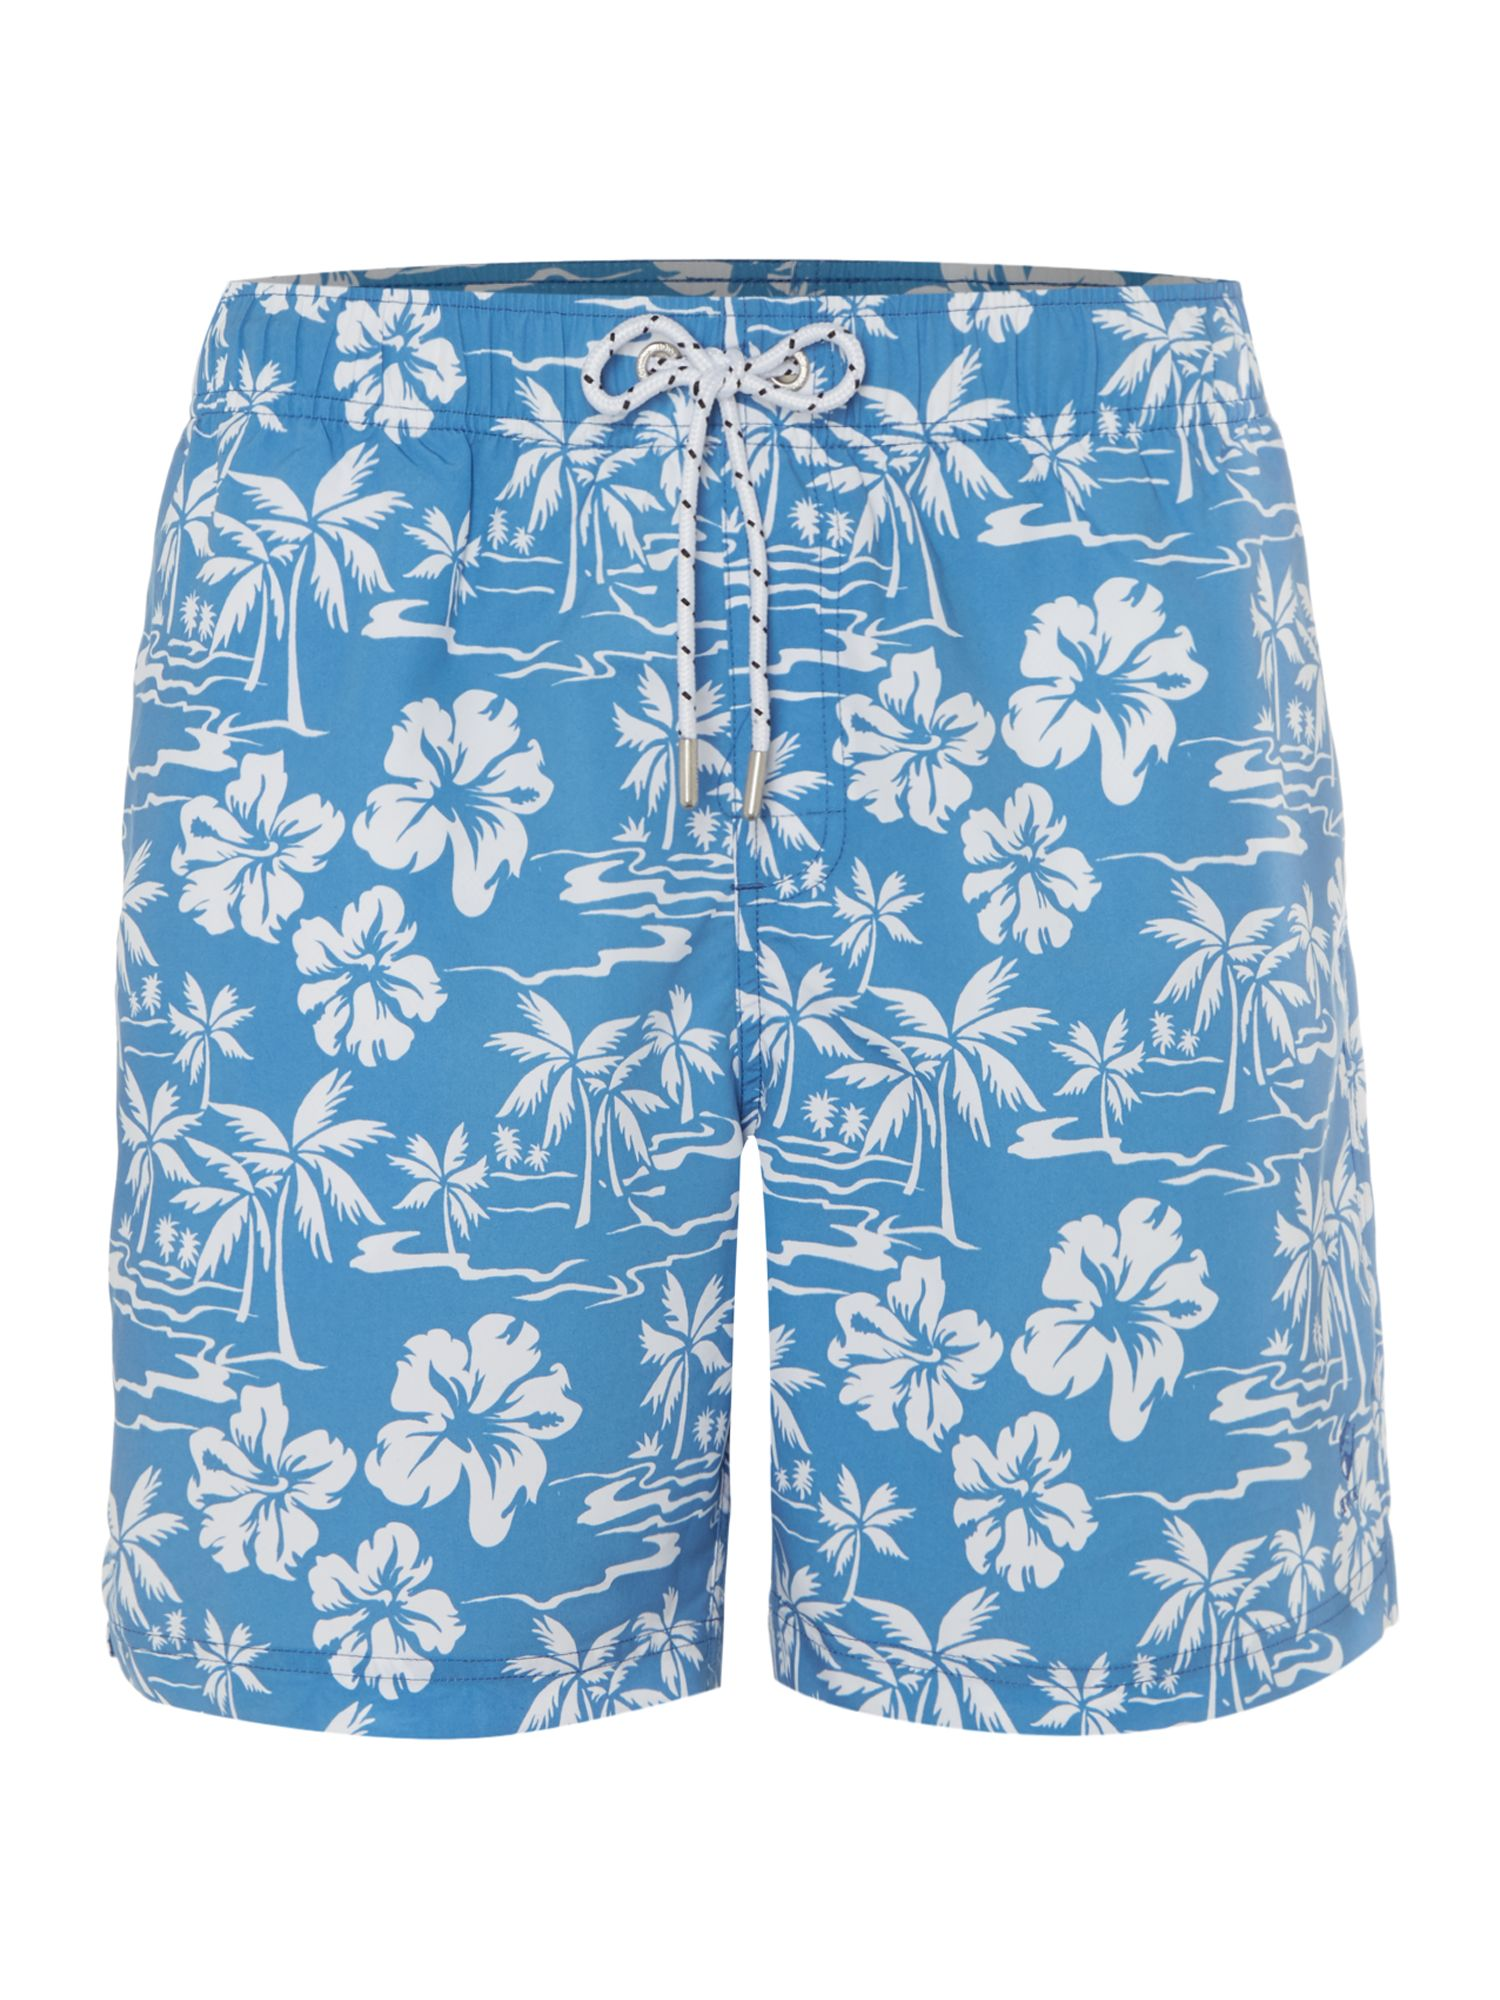 Men's Howick Hawaiian Palm Tree Print Swim Short, Sky